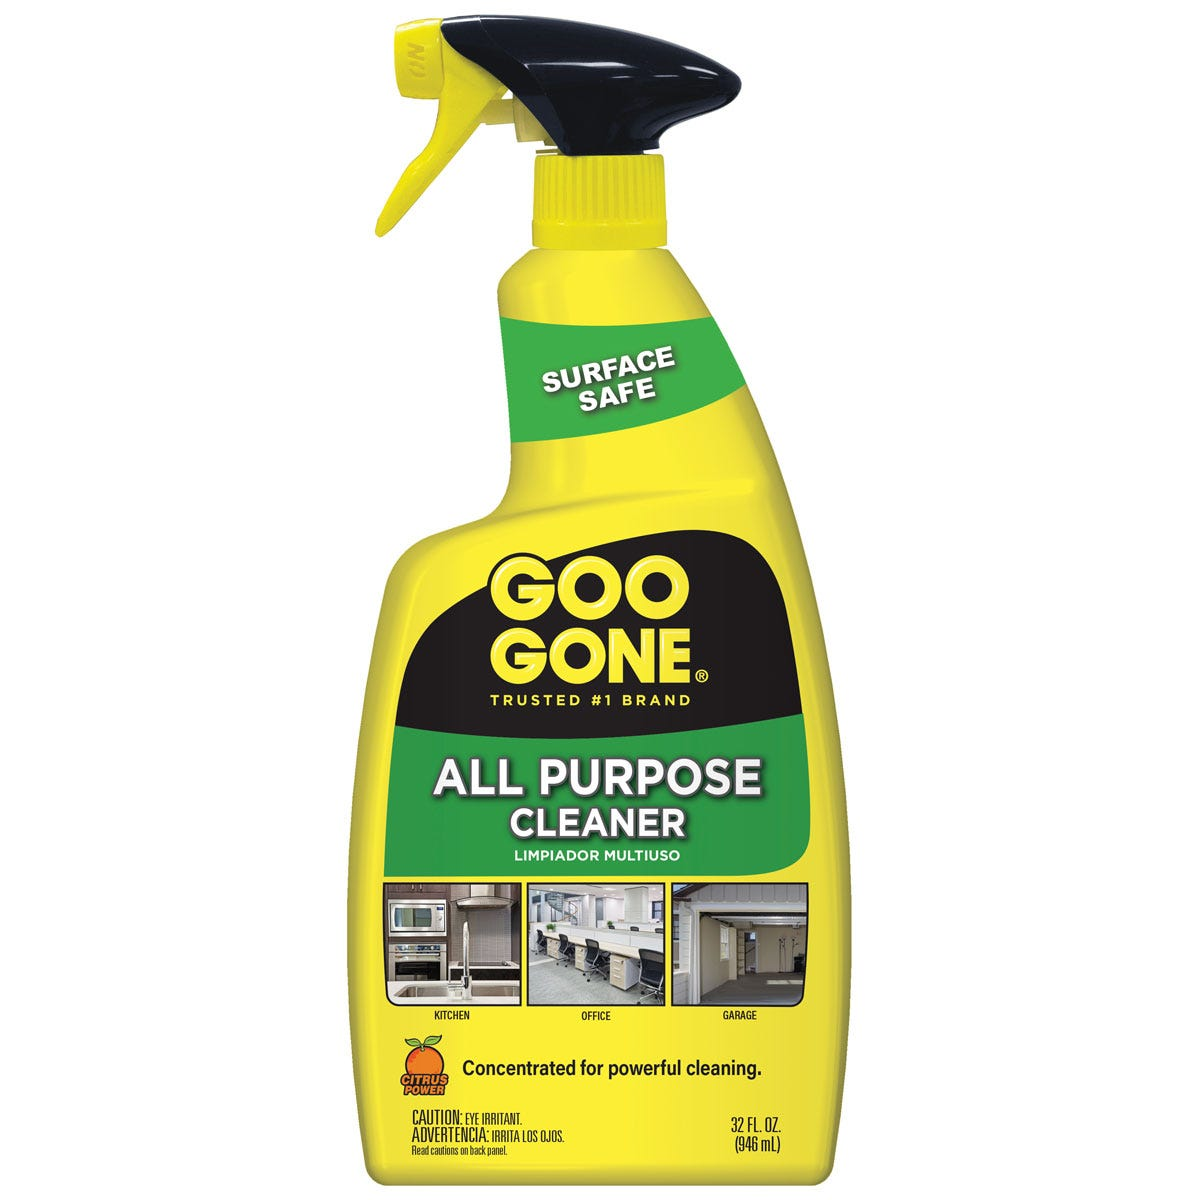 https://googone.com/media/catalog/product/g/o/goo-gone-all-purpose-cleaner_front_3.jpg